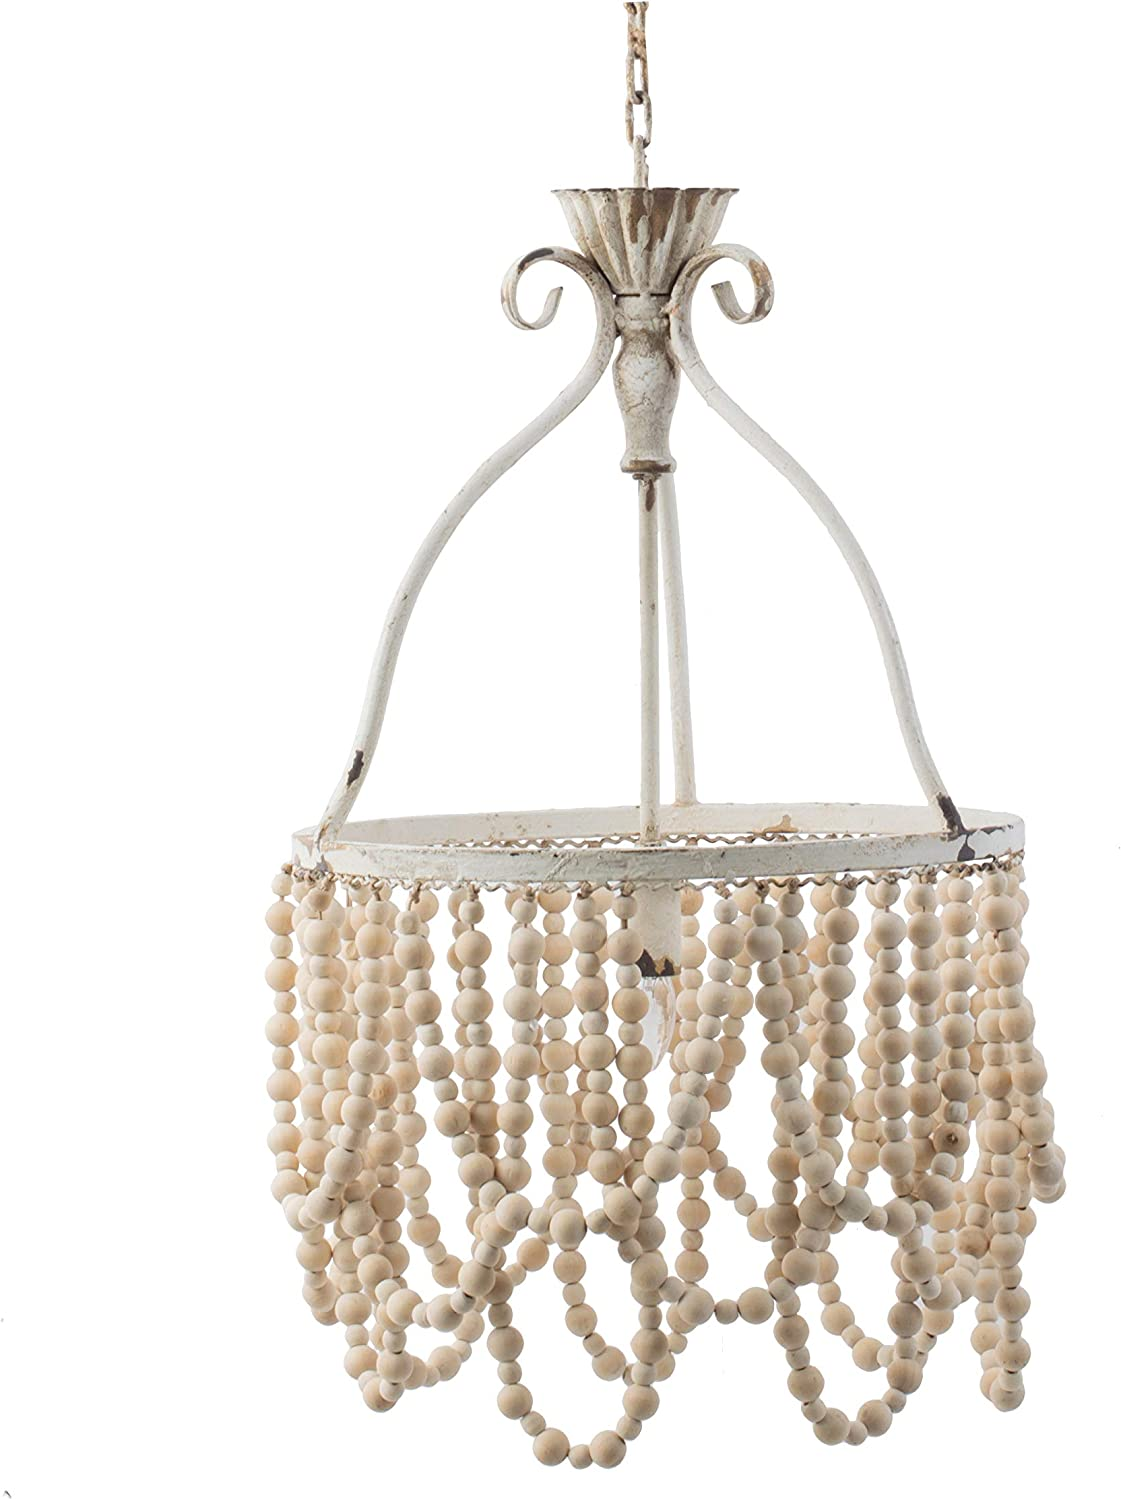 A&B Home White Beaded Chandelier, Dimensions: 14.2L x 14.2W x 25.6H Inches